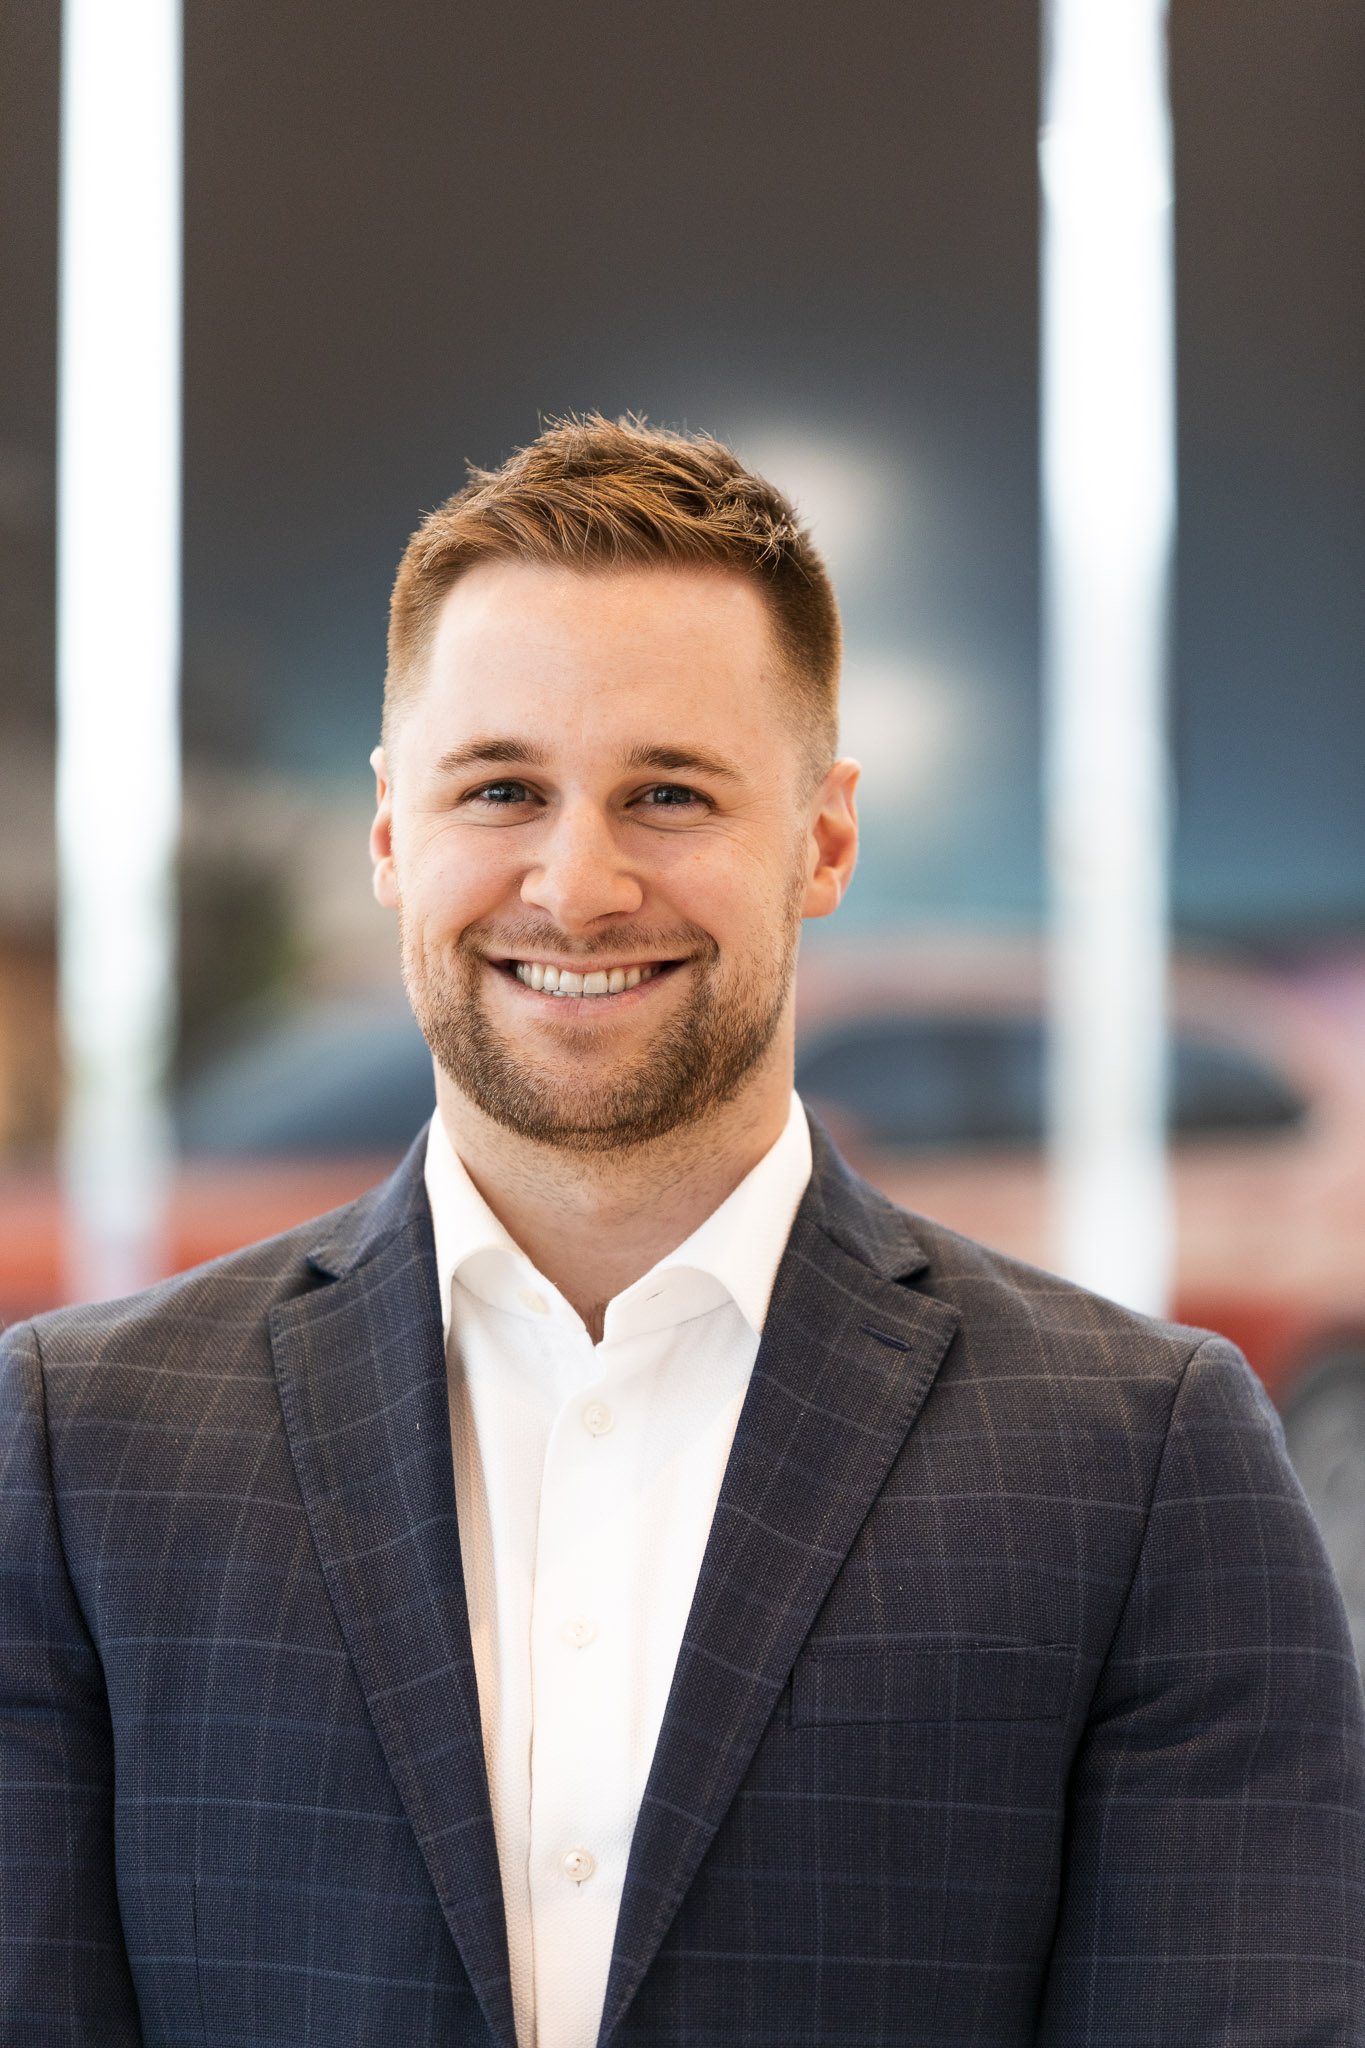 Zach Bourgeois - General Manager